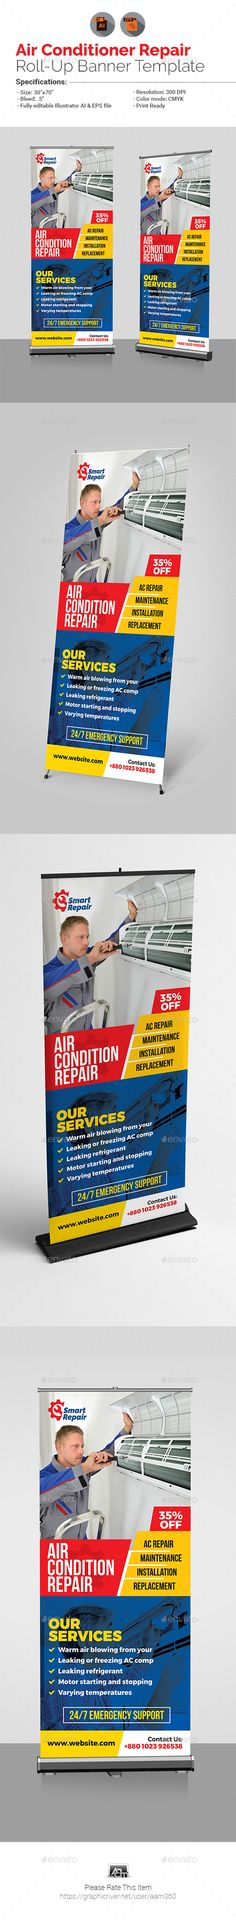 Air Conditioner Repair Service Roll-Up Banner Template Vector EPS, AI Illustrator